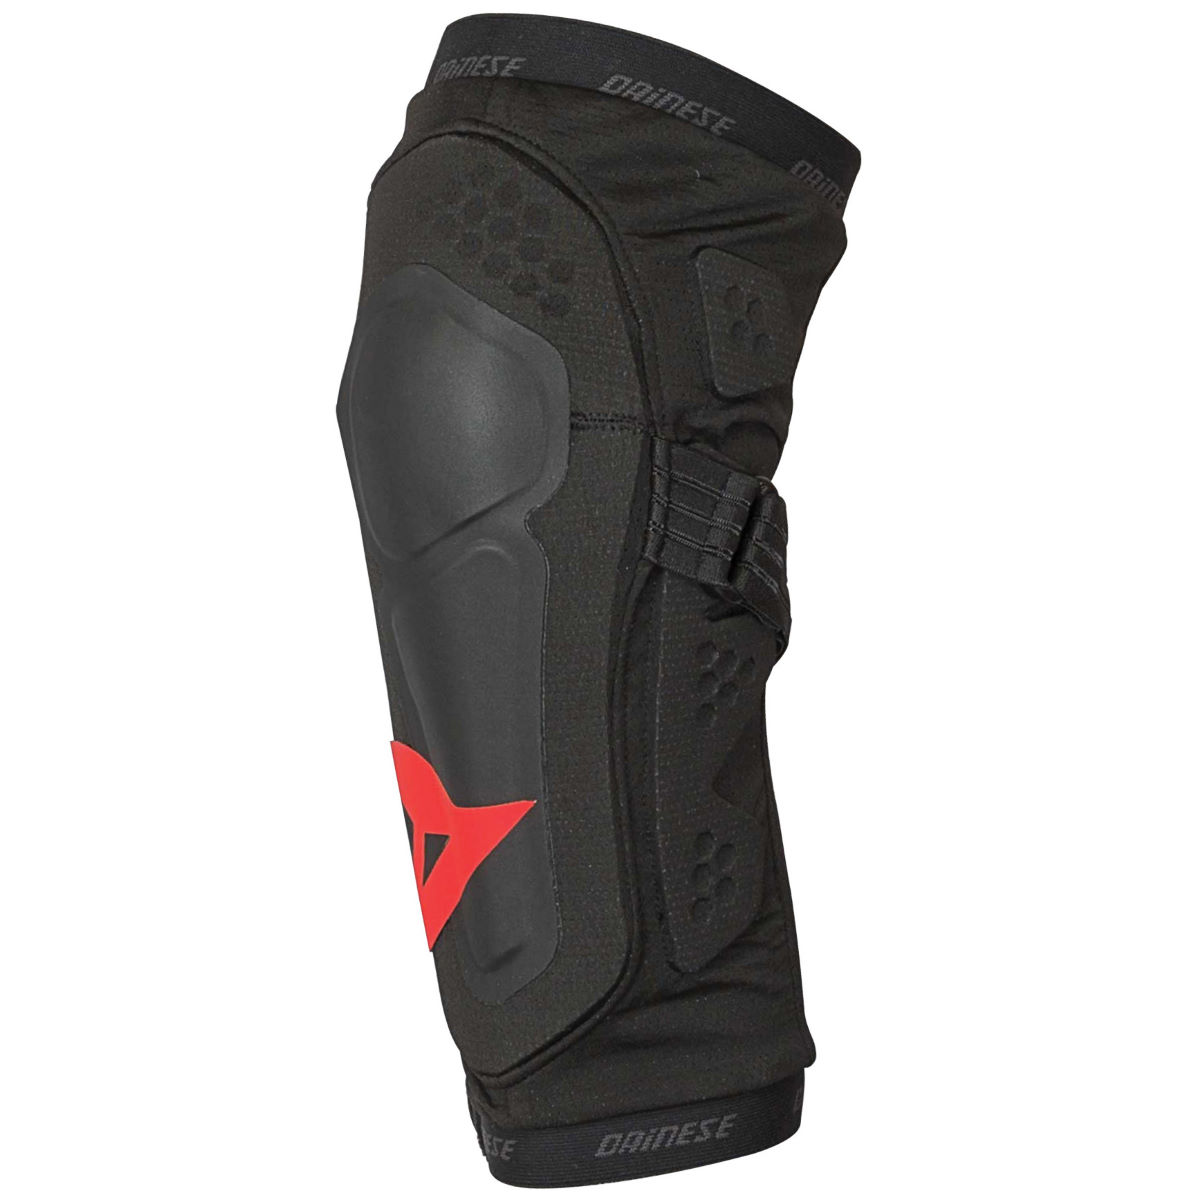 Protections de genou Dainese Hybrid - S Noir Protections